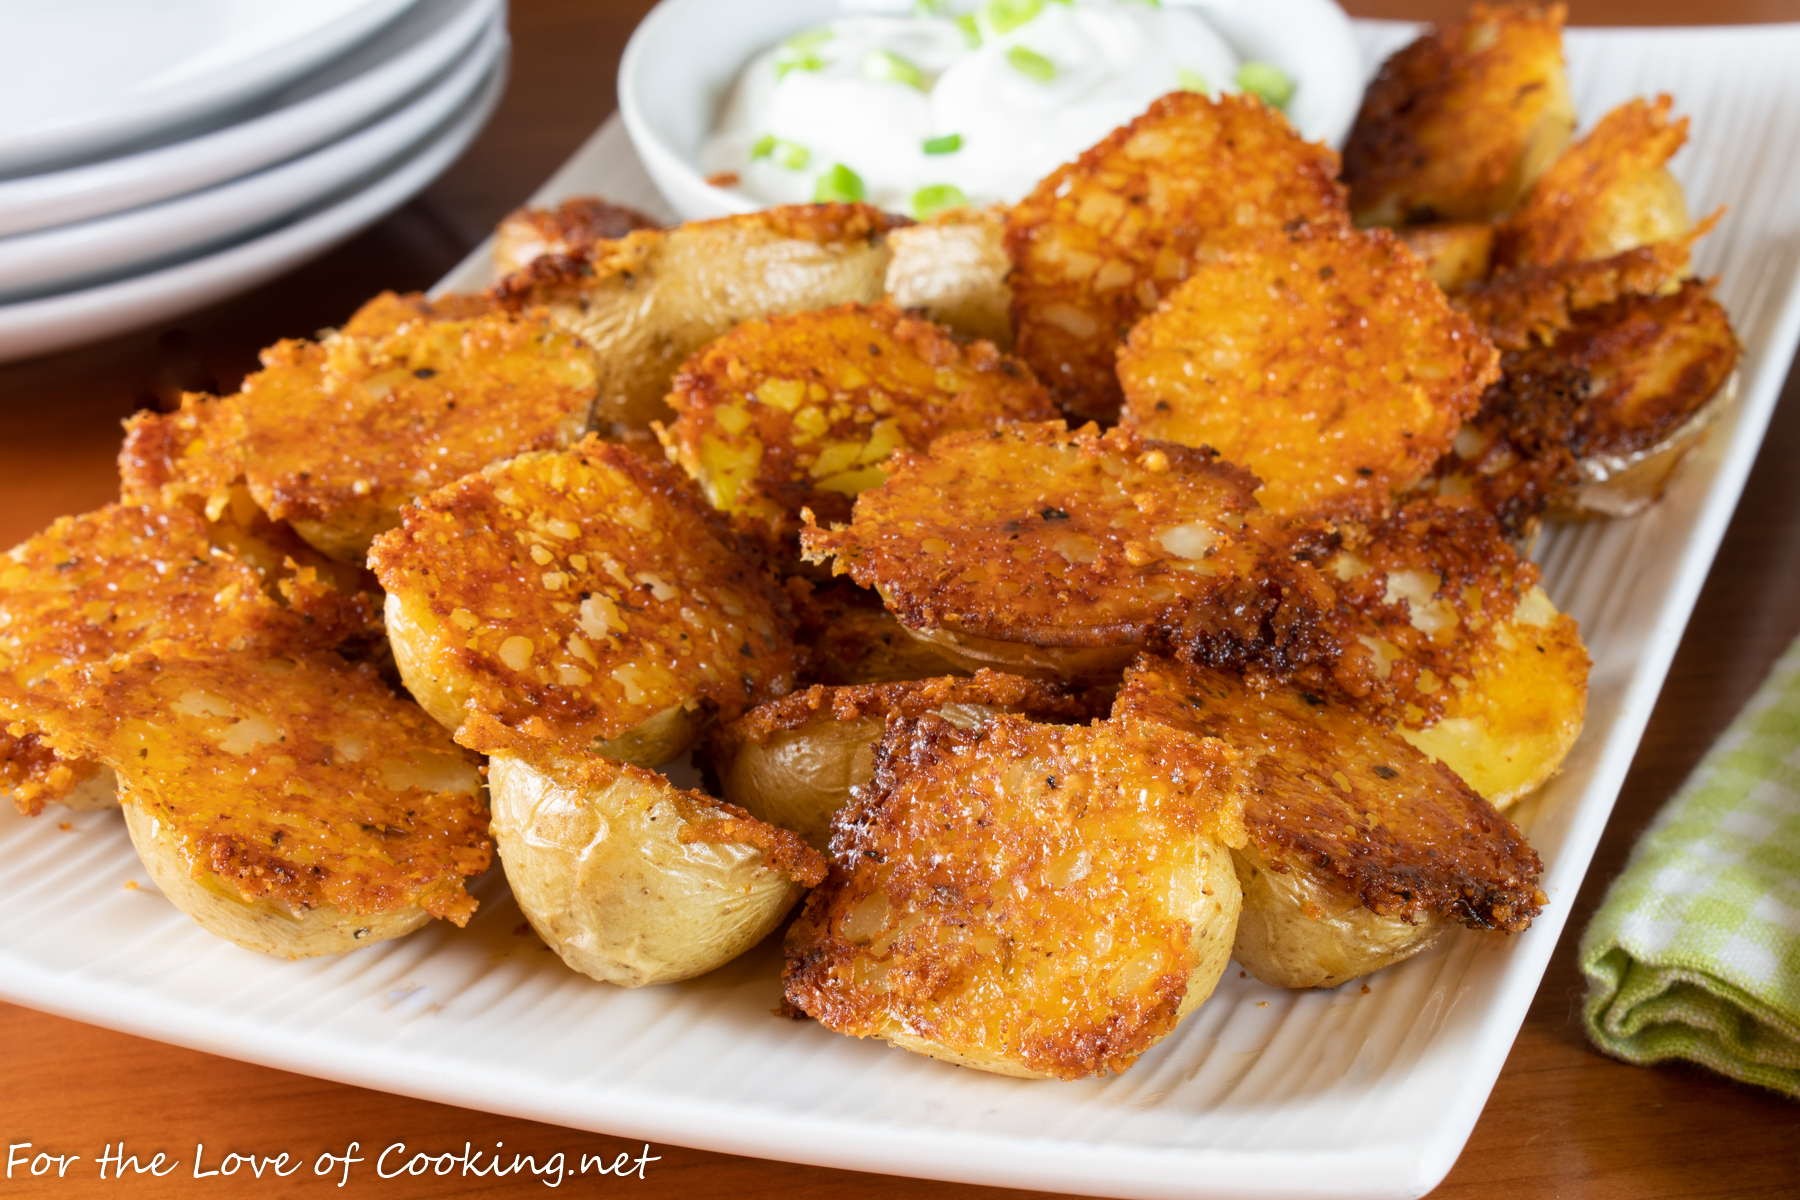 Crispy Parmesan Garlic Roasted Baby Potatoes